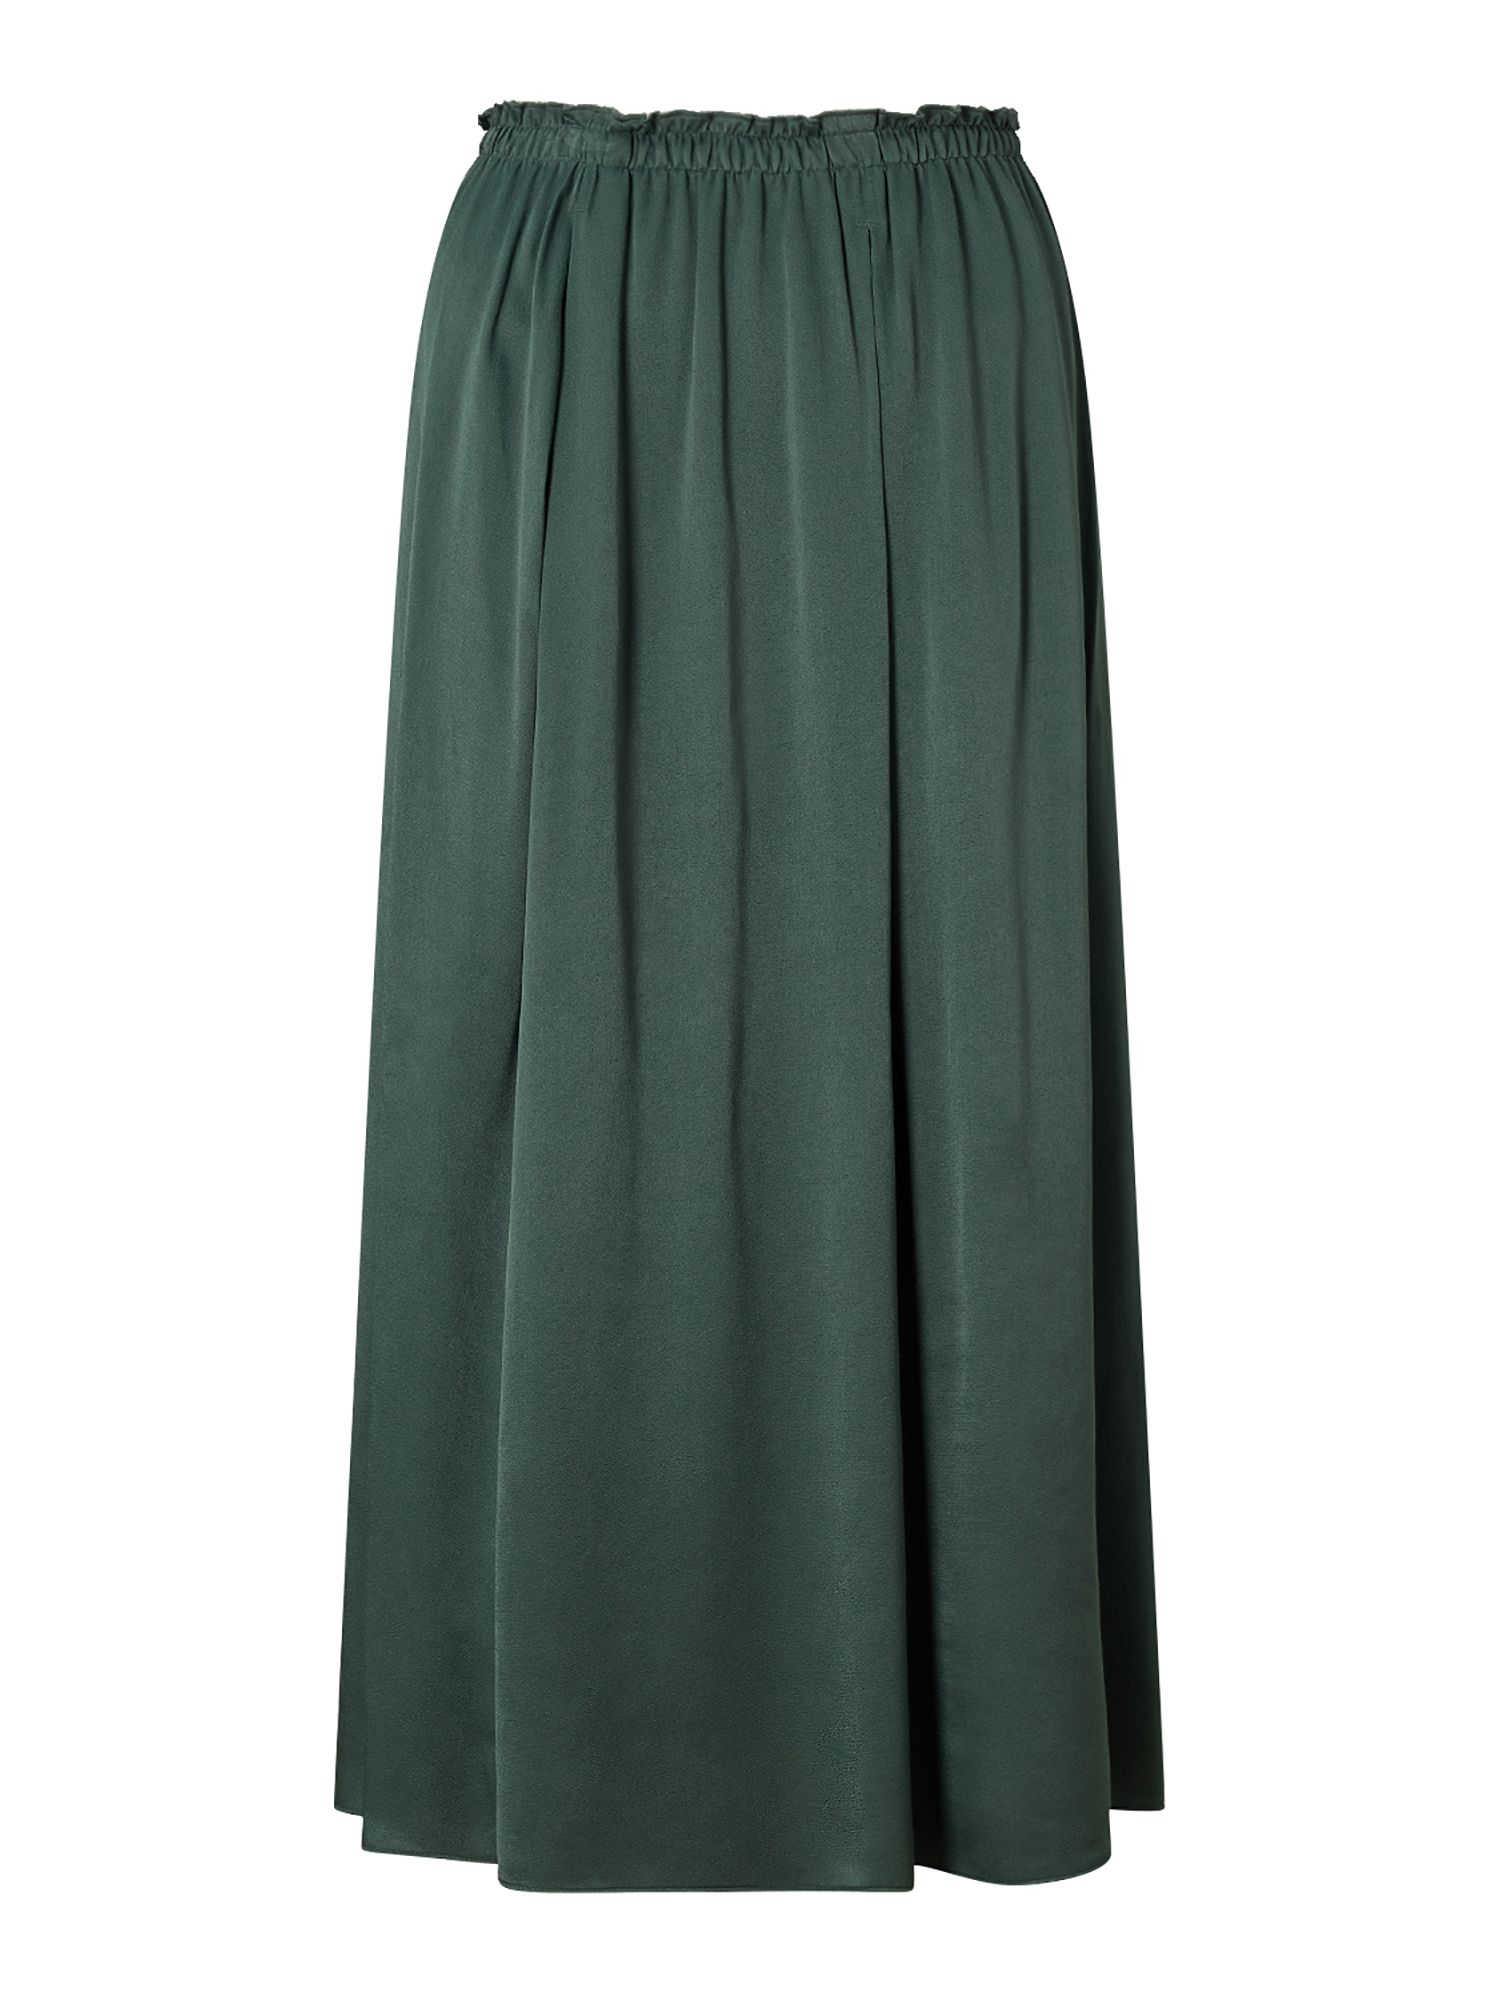 Jigsaw Heavy Satin Fluid Skirt, Green